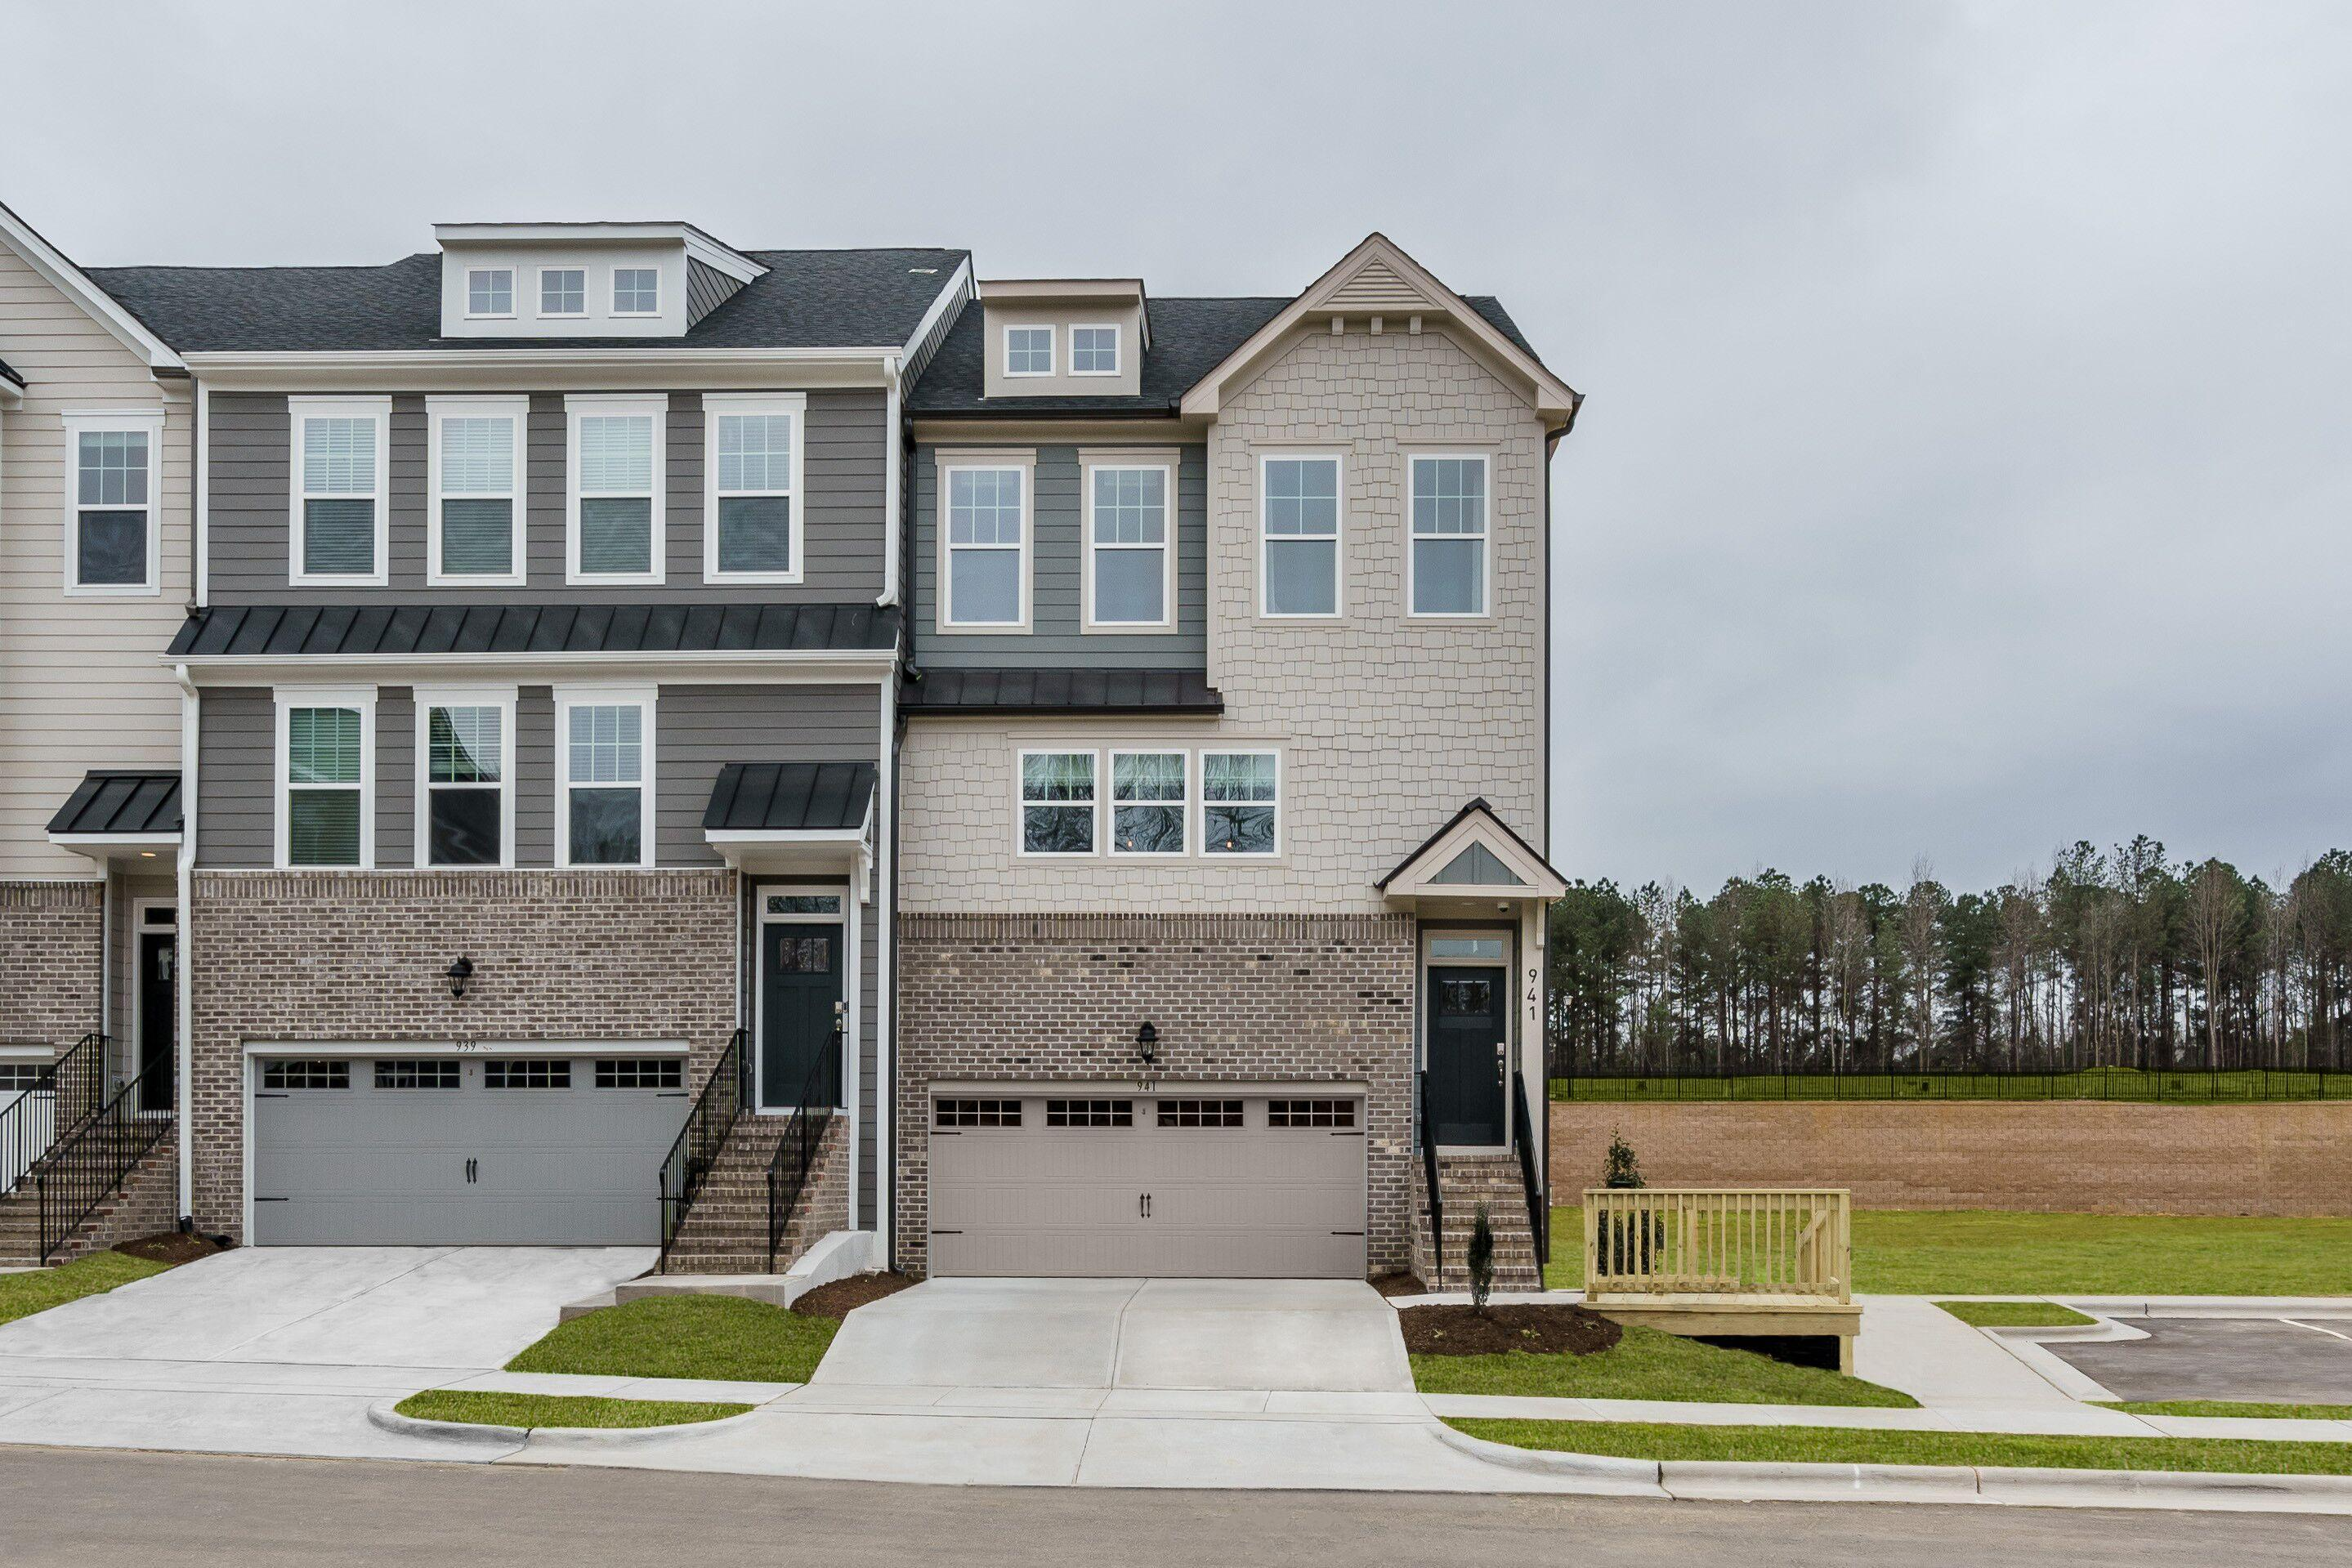 HHHunt Homes New Home Plans in Apex NC | NewHomeSource on